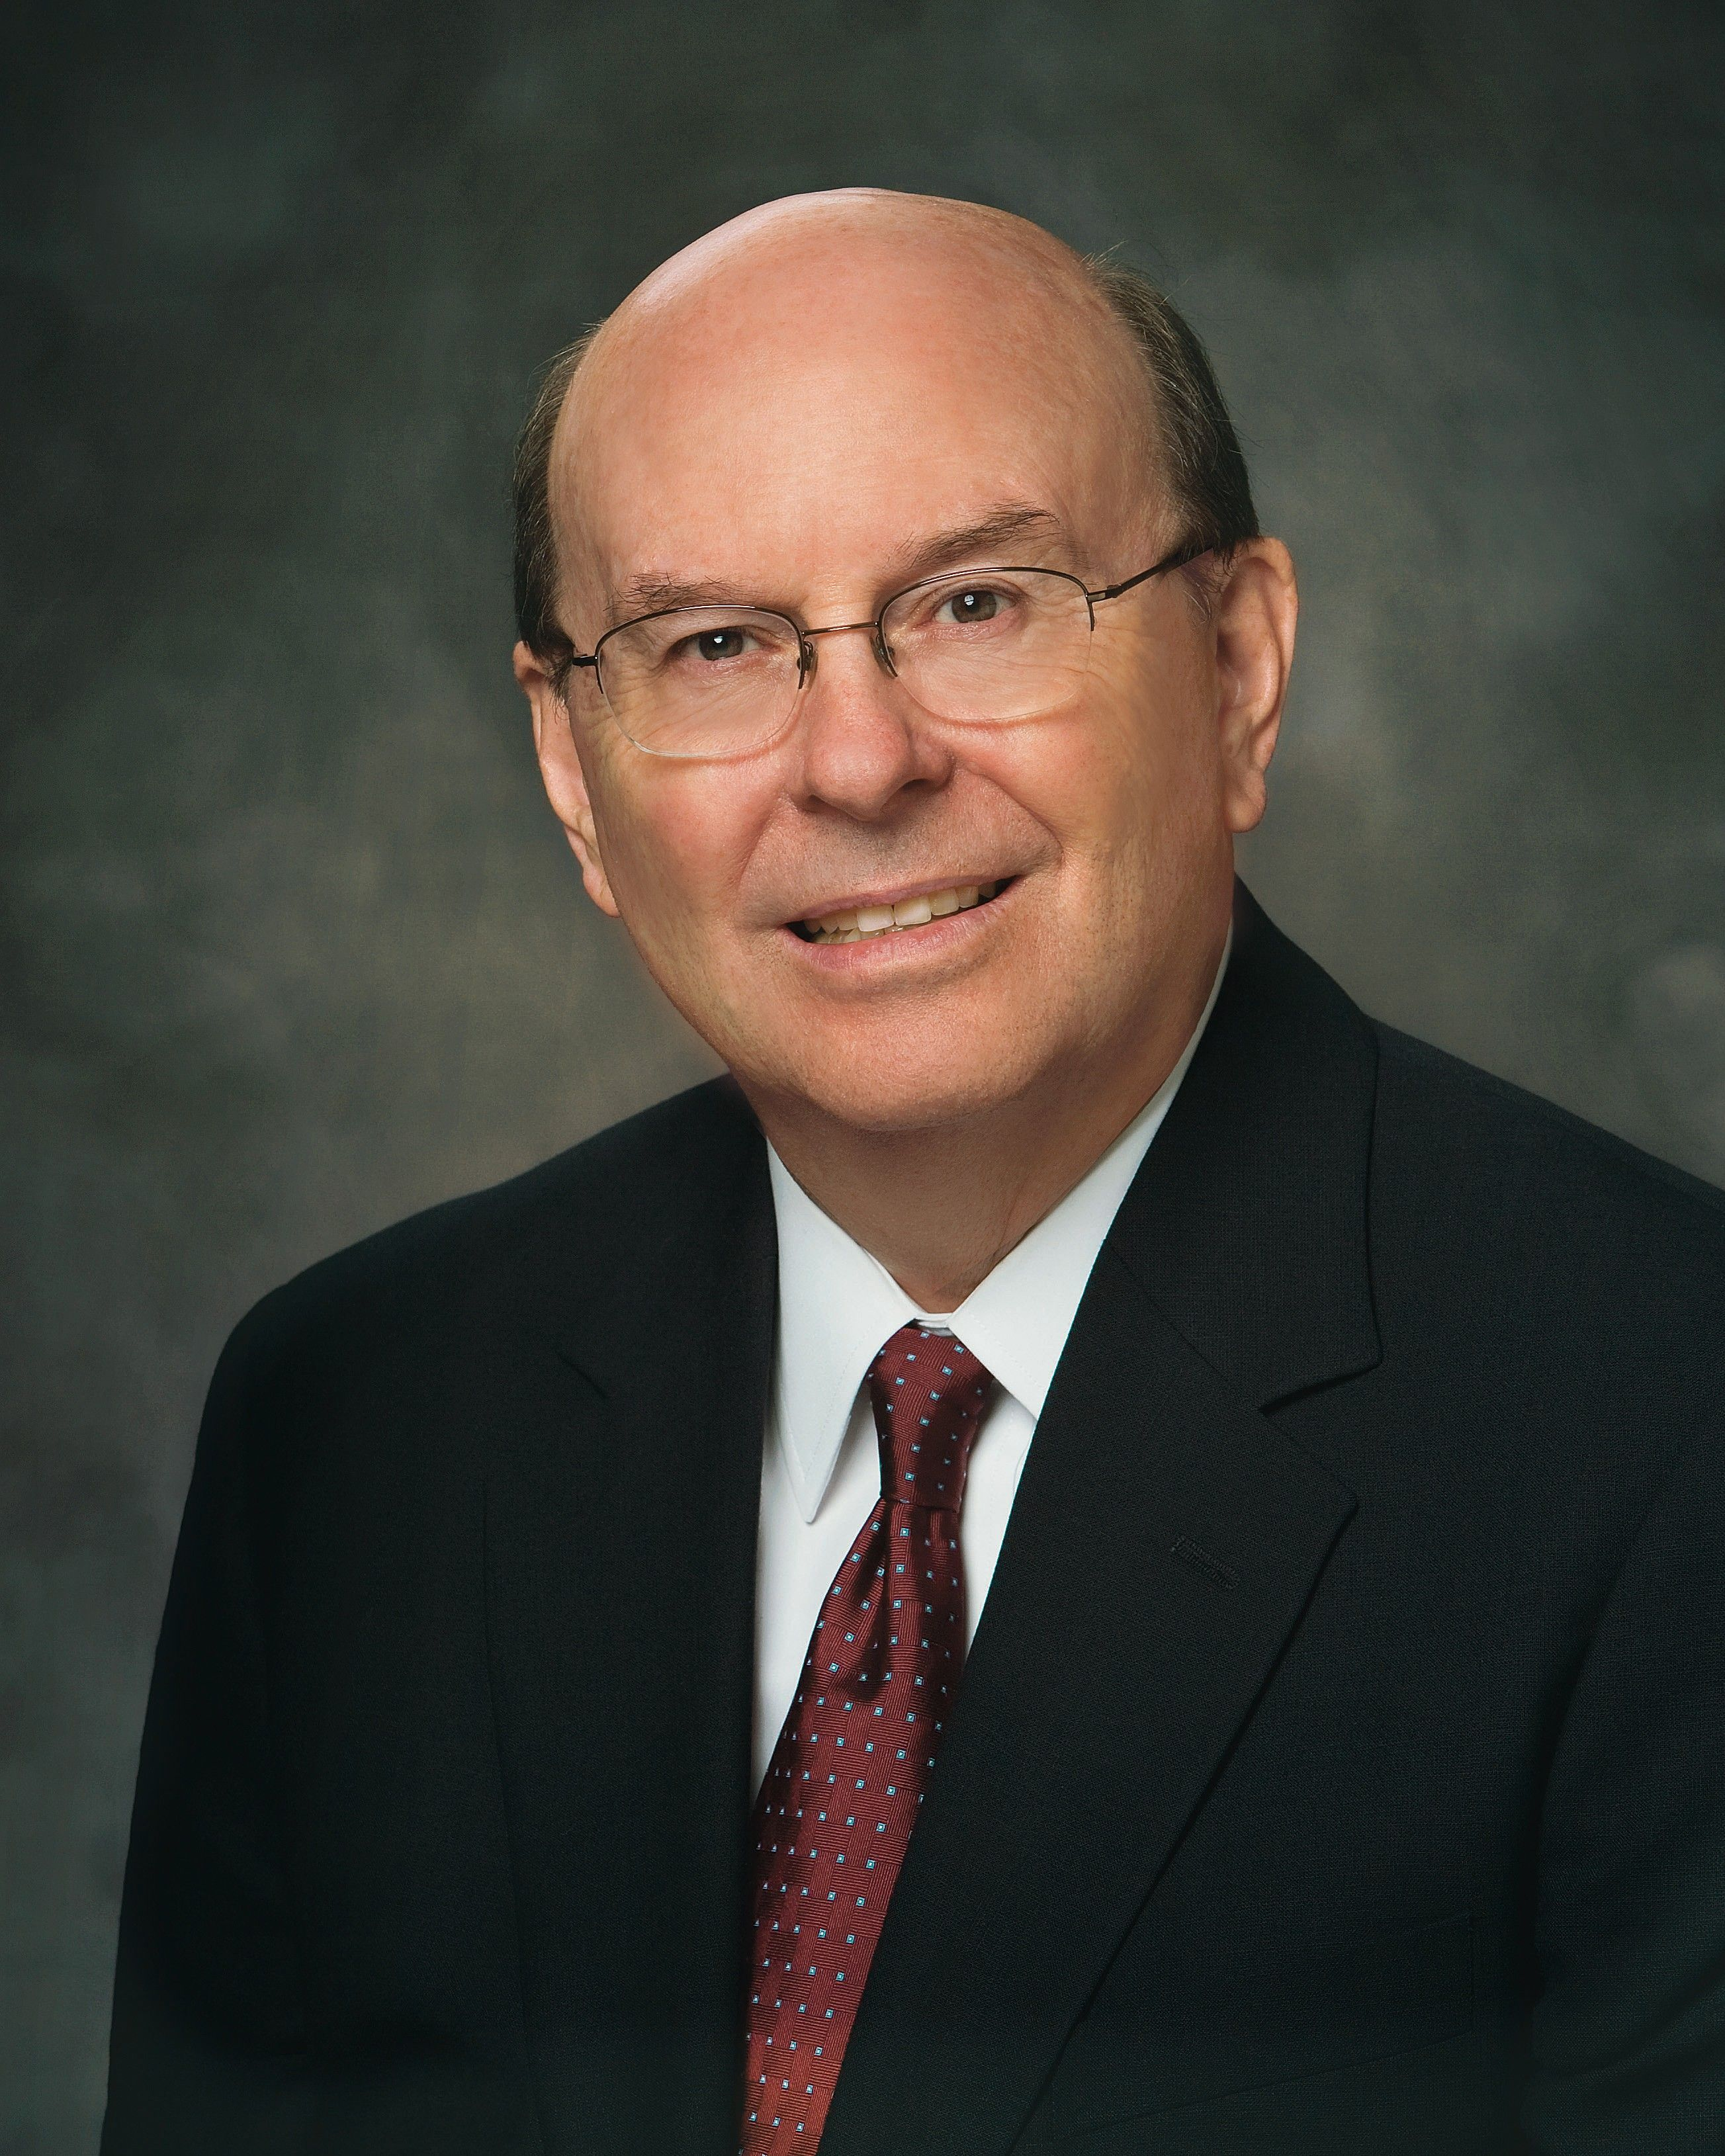 Official Portrait of Elder Quentin L. Cook.  Called to the Quorum of the Twelve Apostles on 6 October 2007.